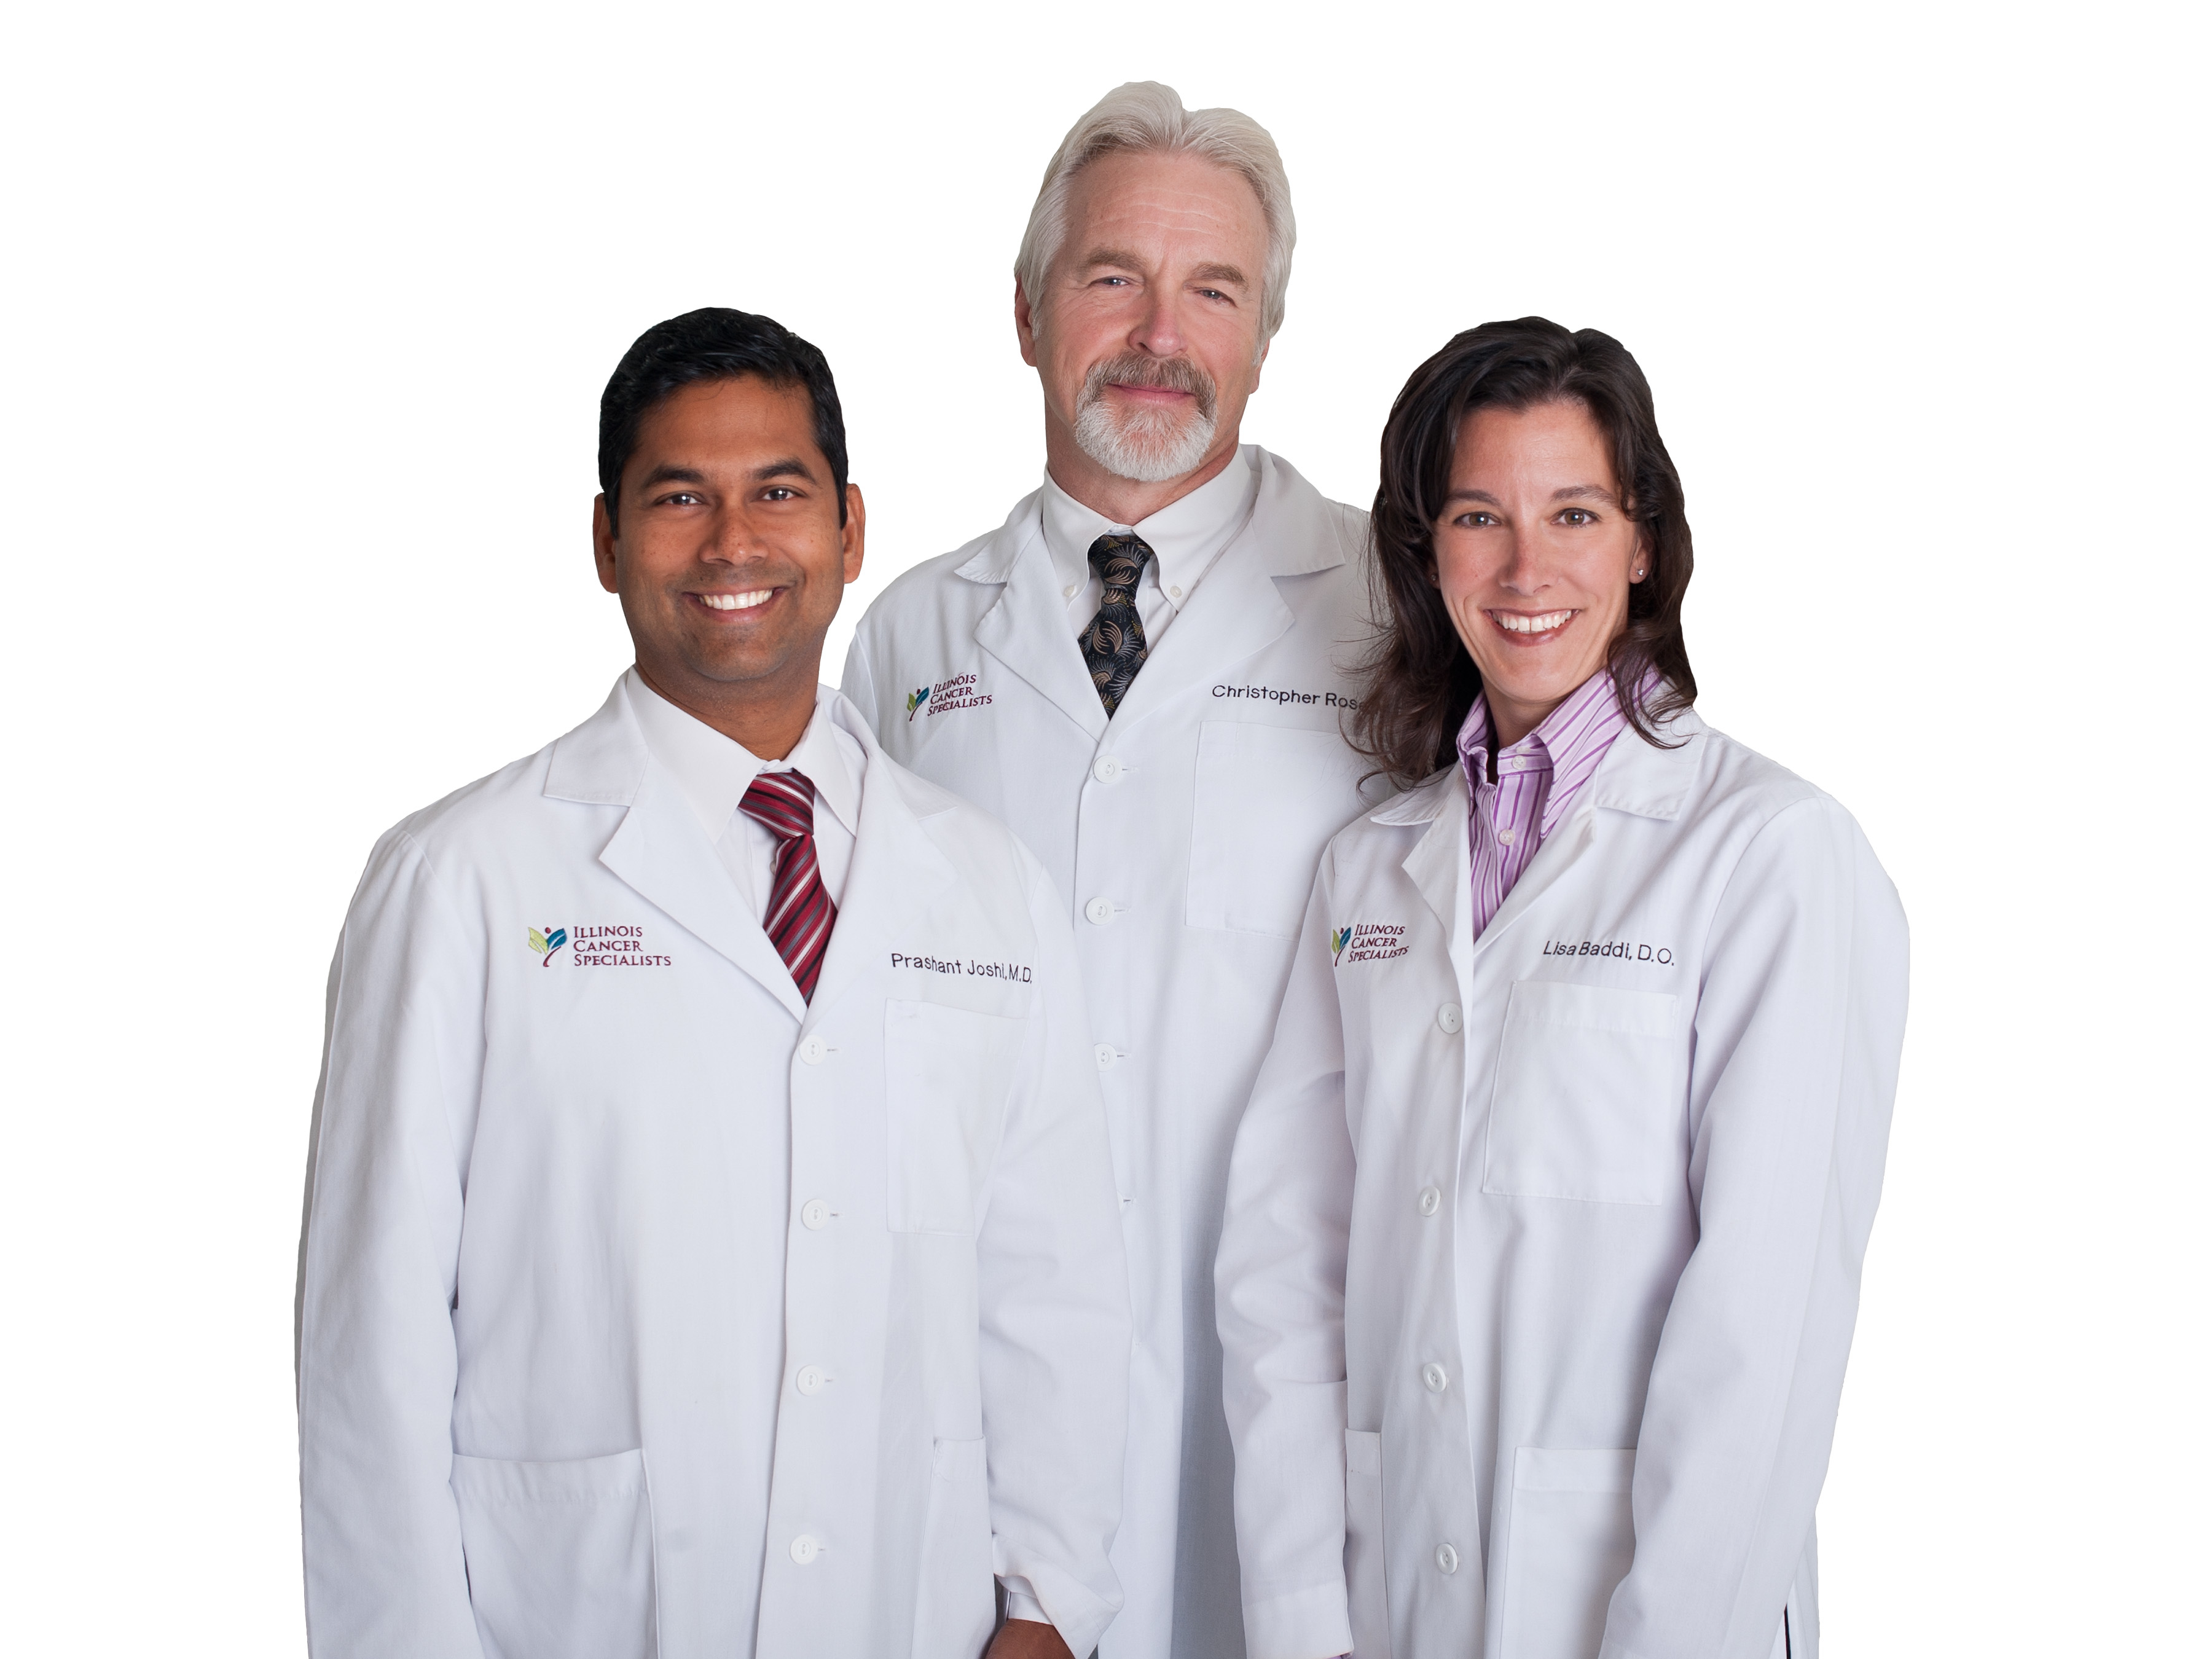 Illinois Cancer Specialists Of Chicago/Resurrection Medical Center